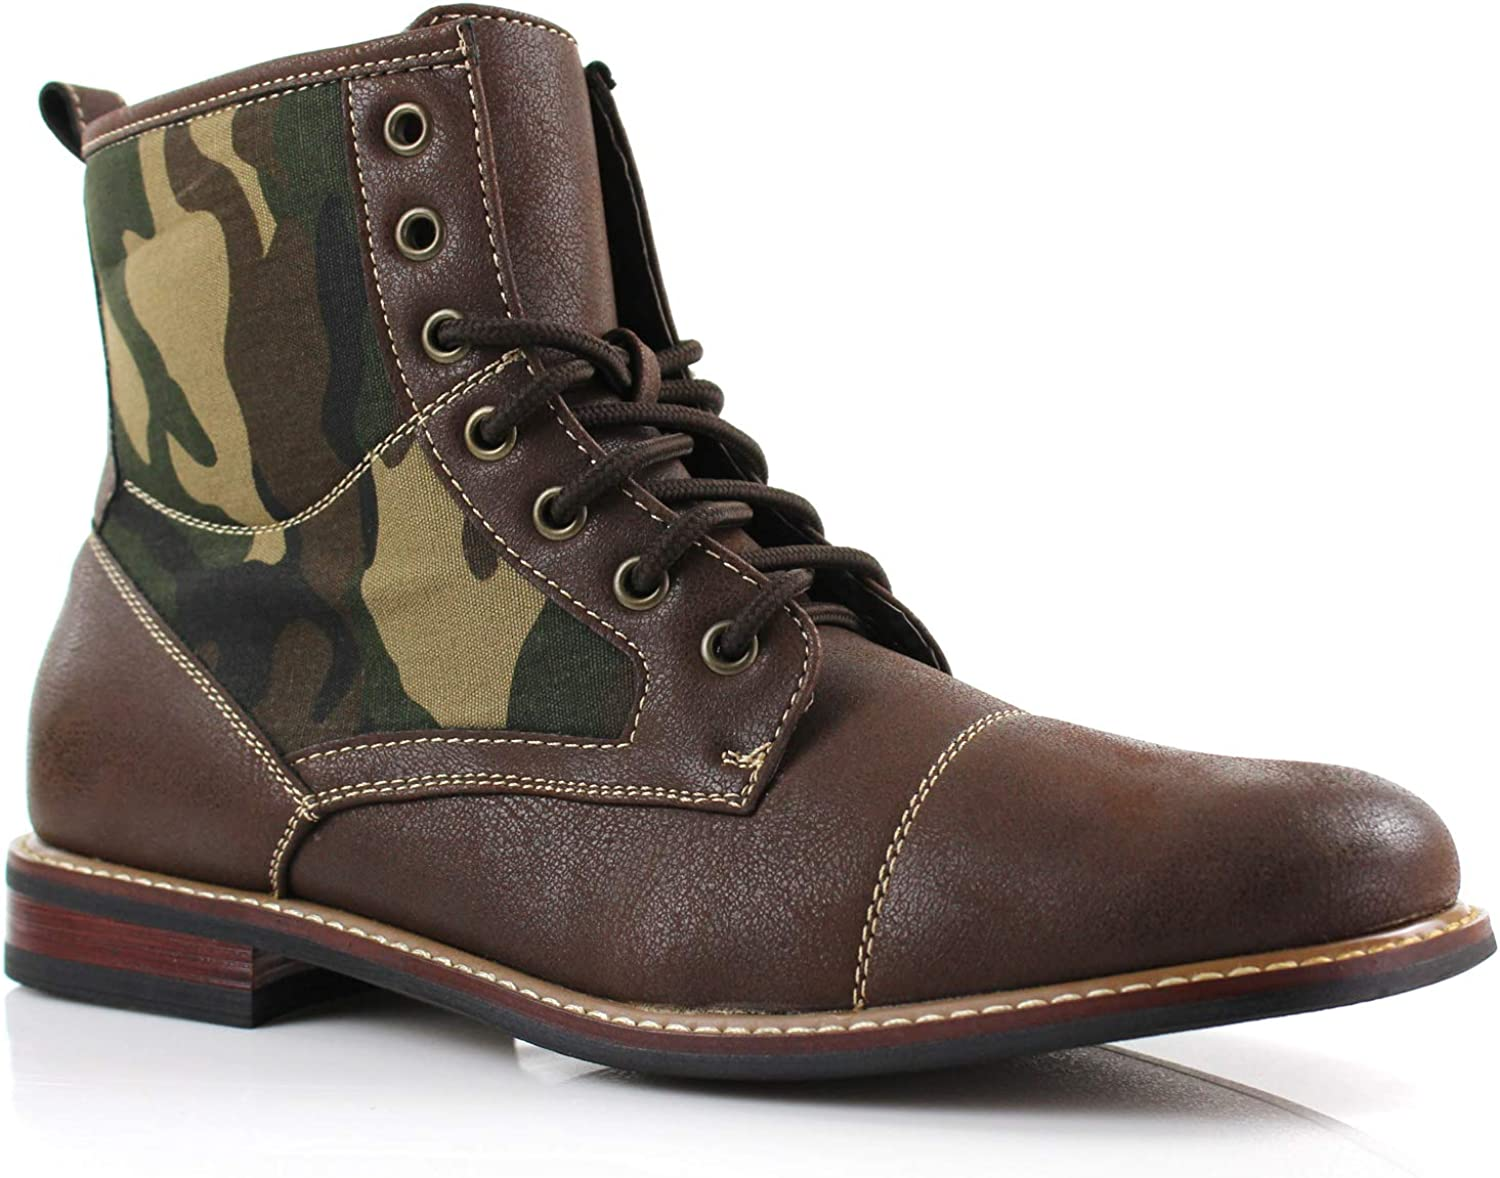 Ferro Aldo Rufus MFA806032 Mens Casual Cap Suede Special price for Long-awaited a limited time Toe Boot Motorc